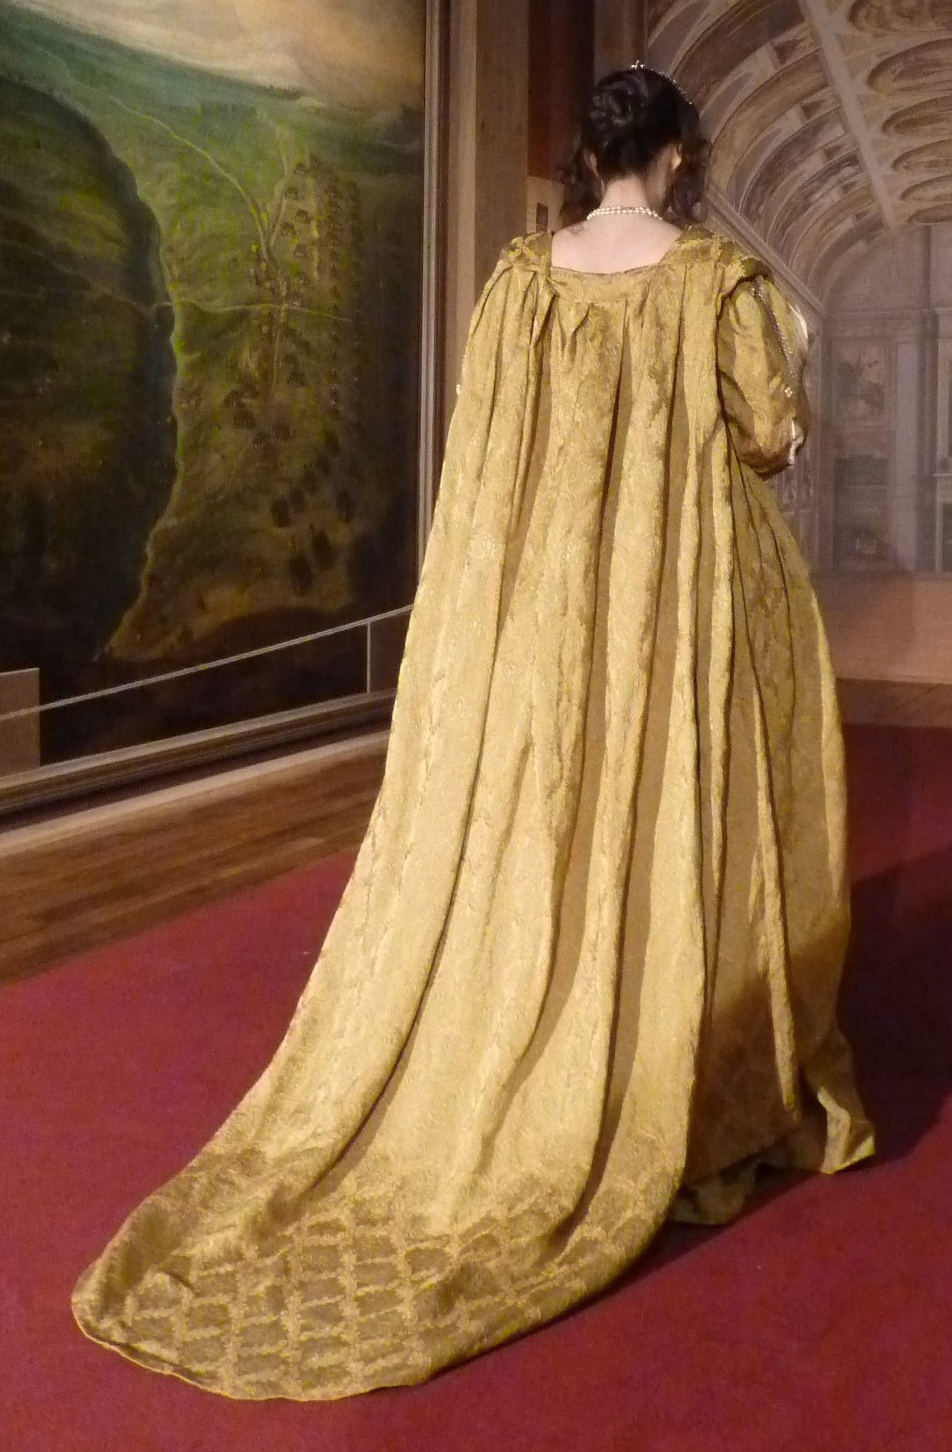 Detail of the Anne of Austria's costume